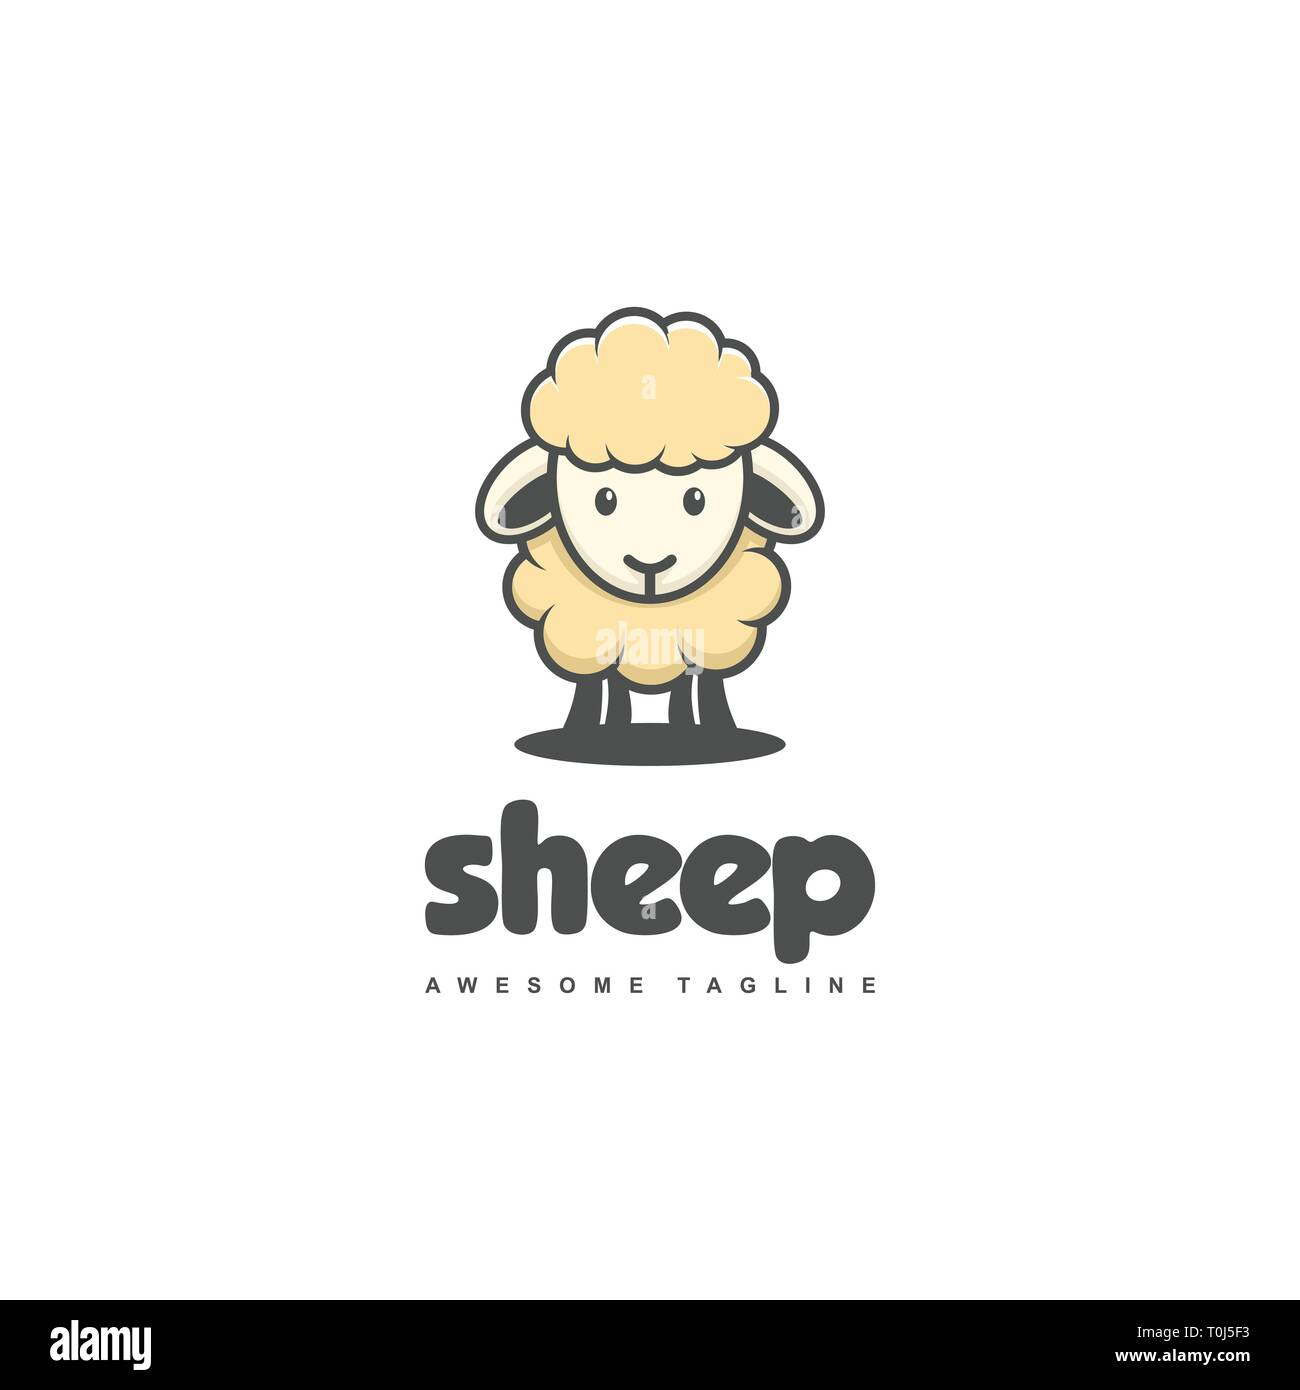 Sheep Concept illustration vector template. Suitable for Creative Industry, Multimedia, entertainment, Educations, Shop, and any related business - Stock Image